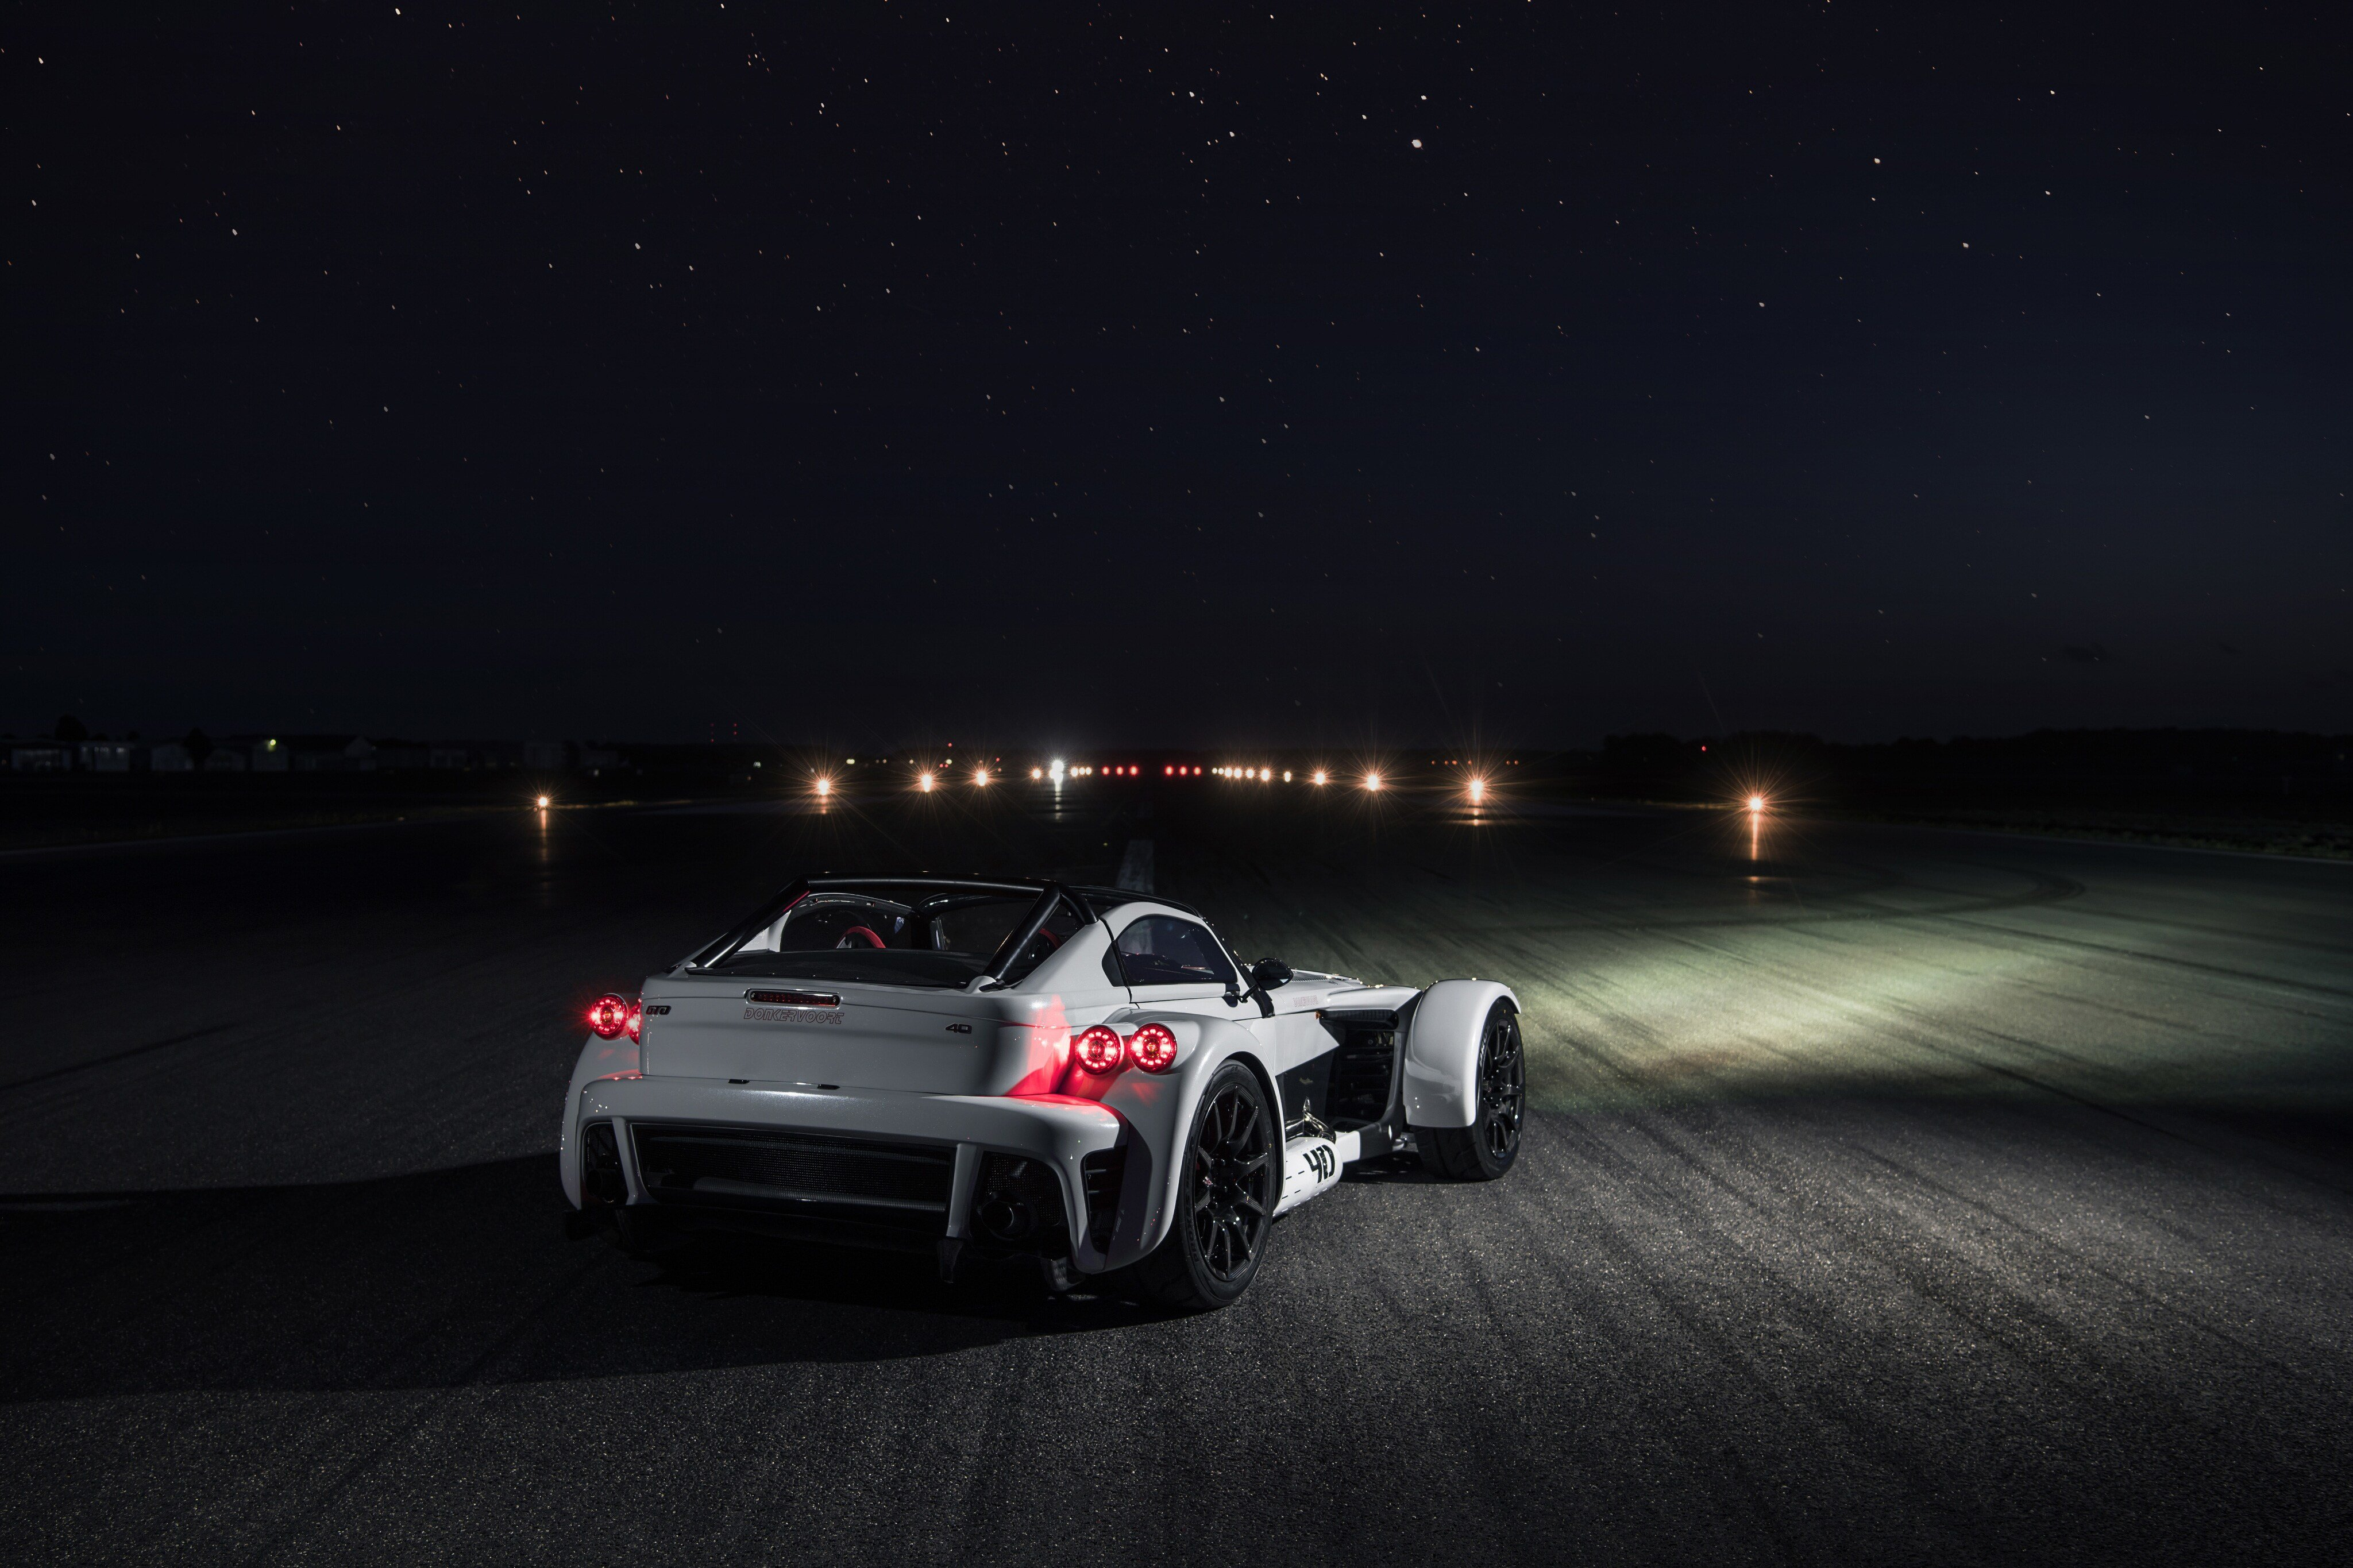 New Donkervoort D8 Gto 40 2018 Rear Hd Cars 4K Wallpapers On This Month